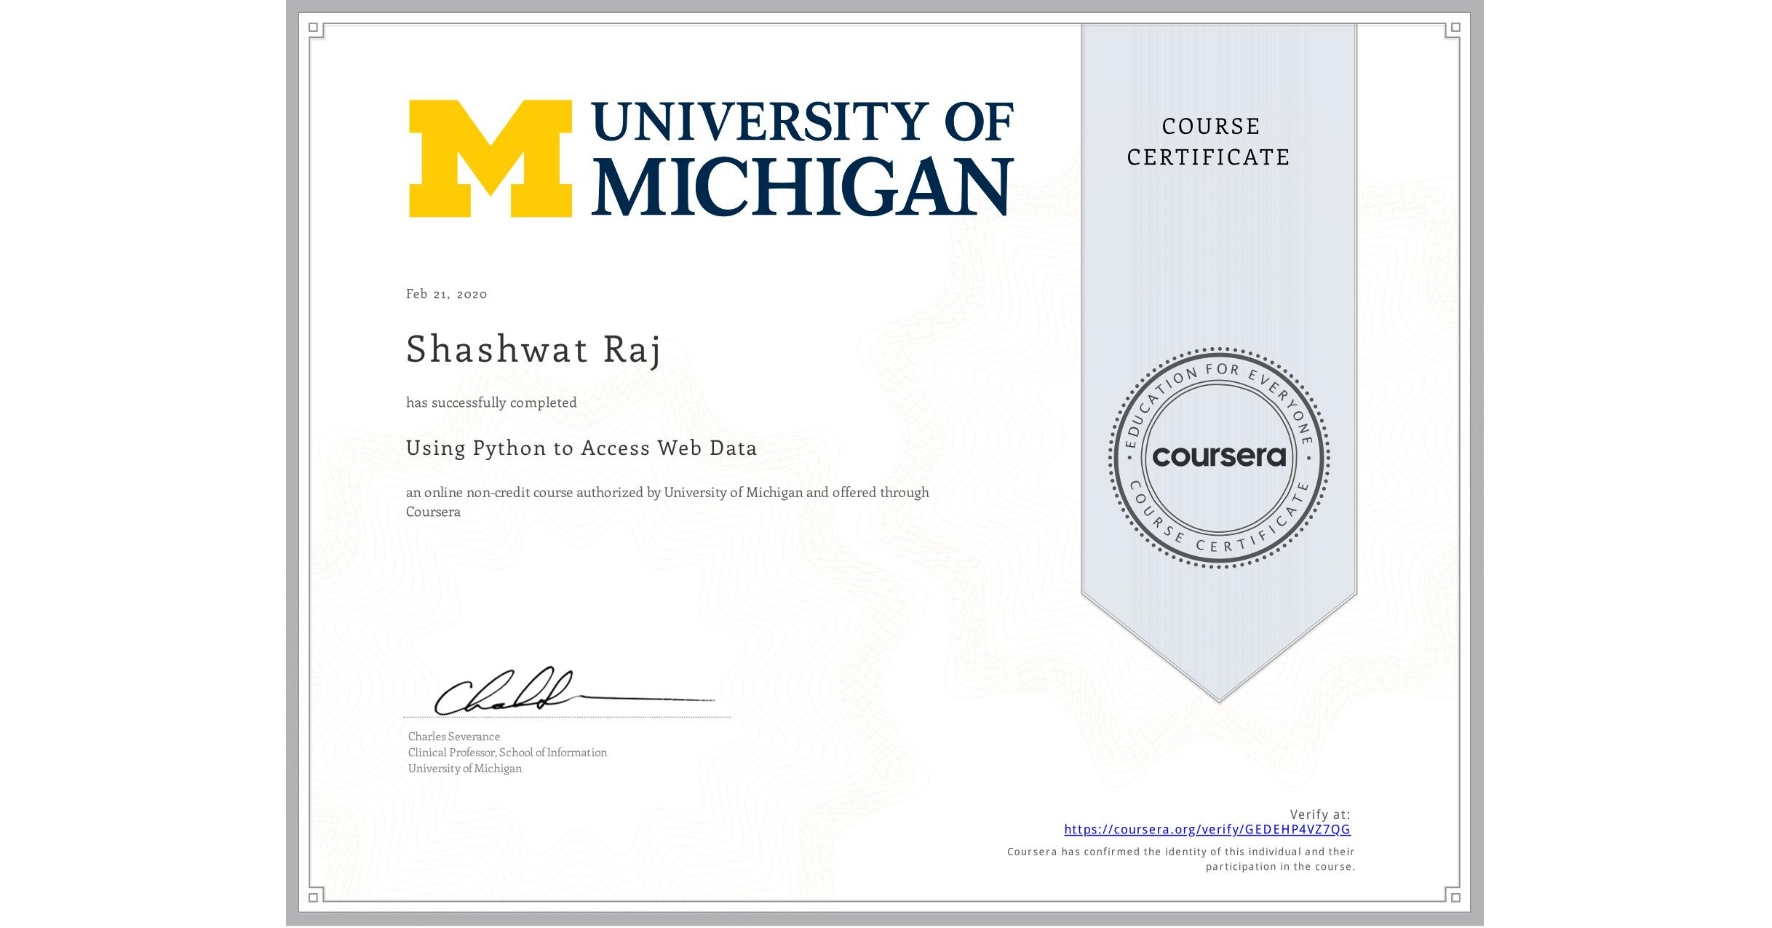 View certificate for Shashwat Raj, Using Python to Access Web Data, an online non-credit course authorized by University of Michigan and offered through Coursera